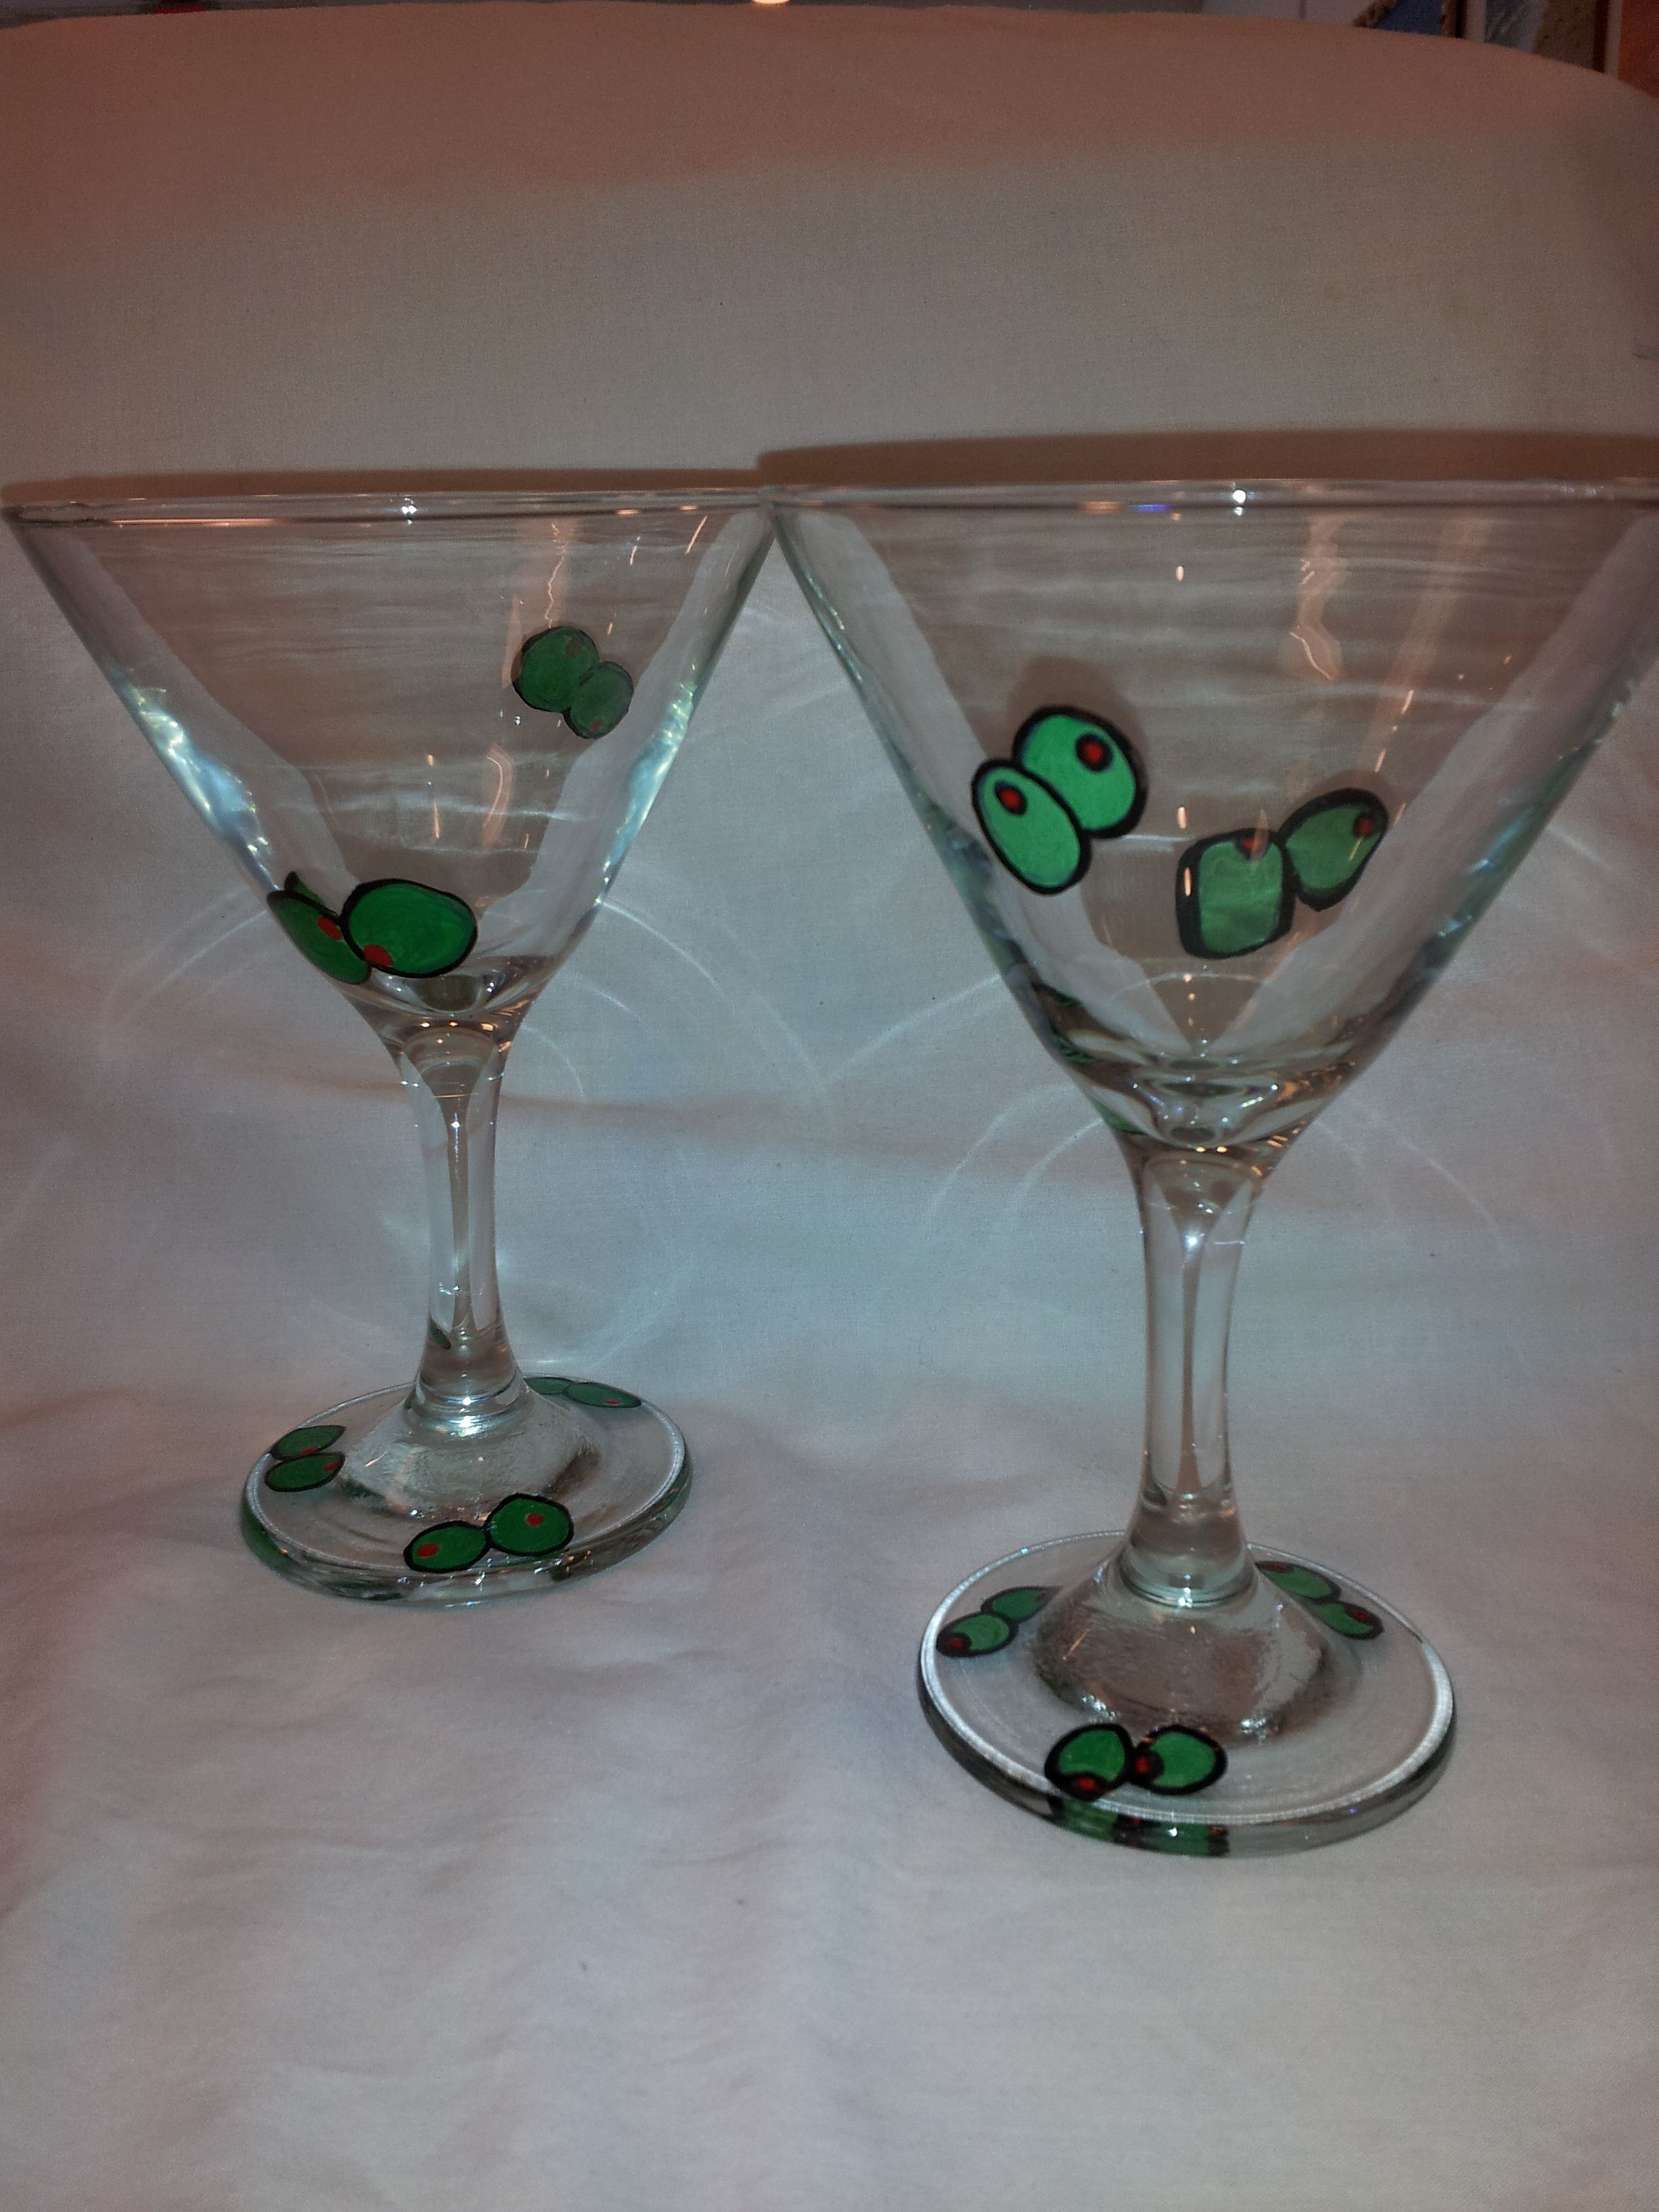 Hand painted Olive Martini Glasses, set of 2 $35. harrisartstudio.com